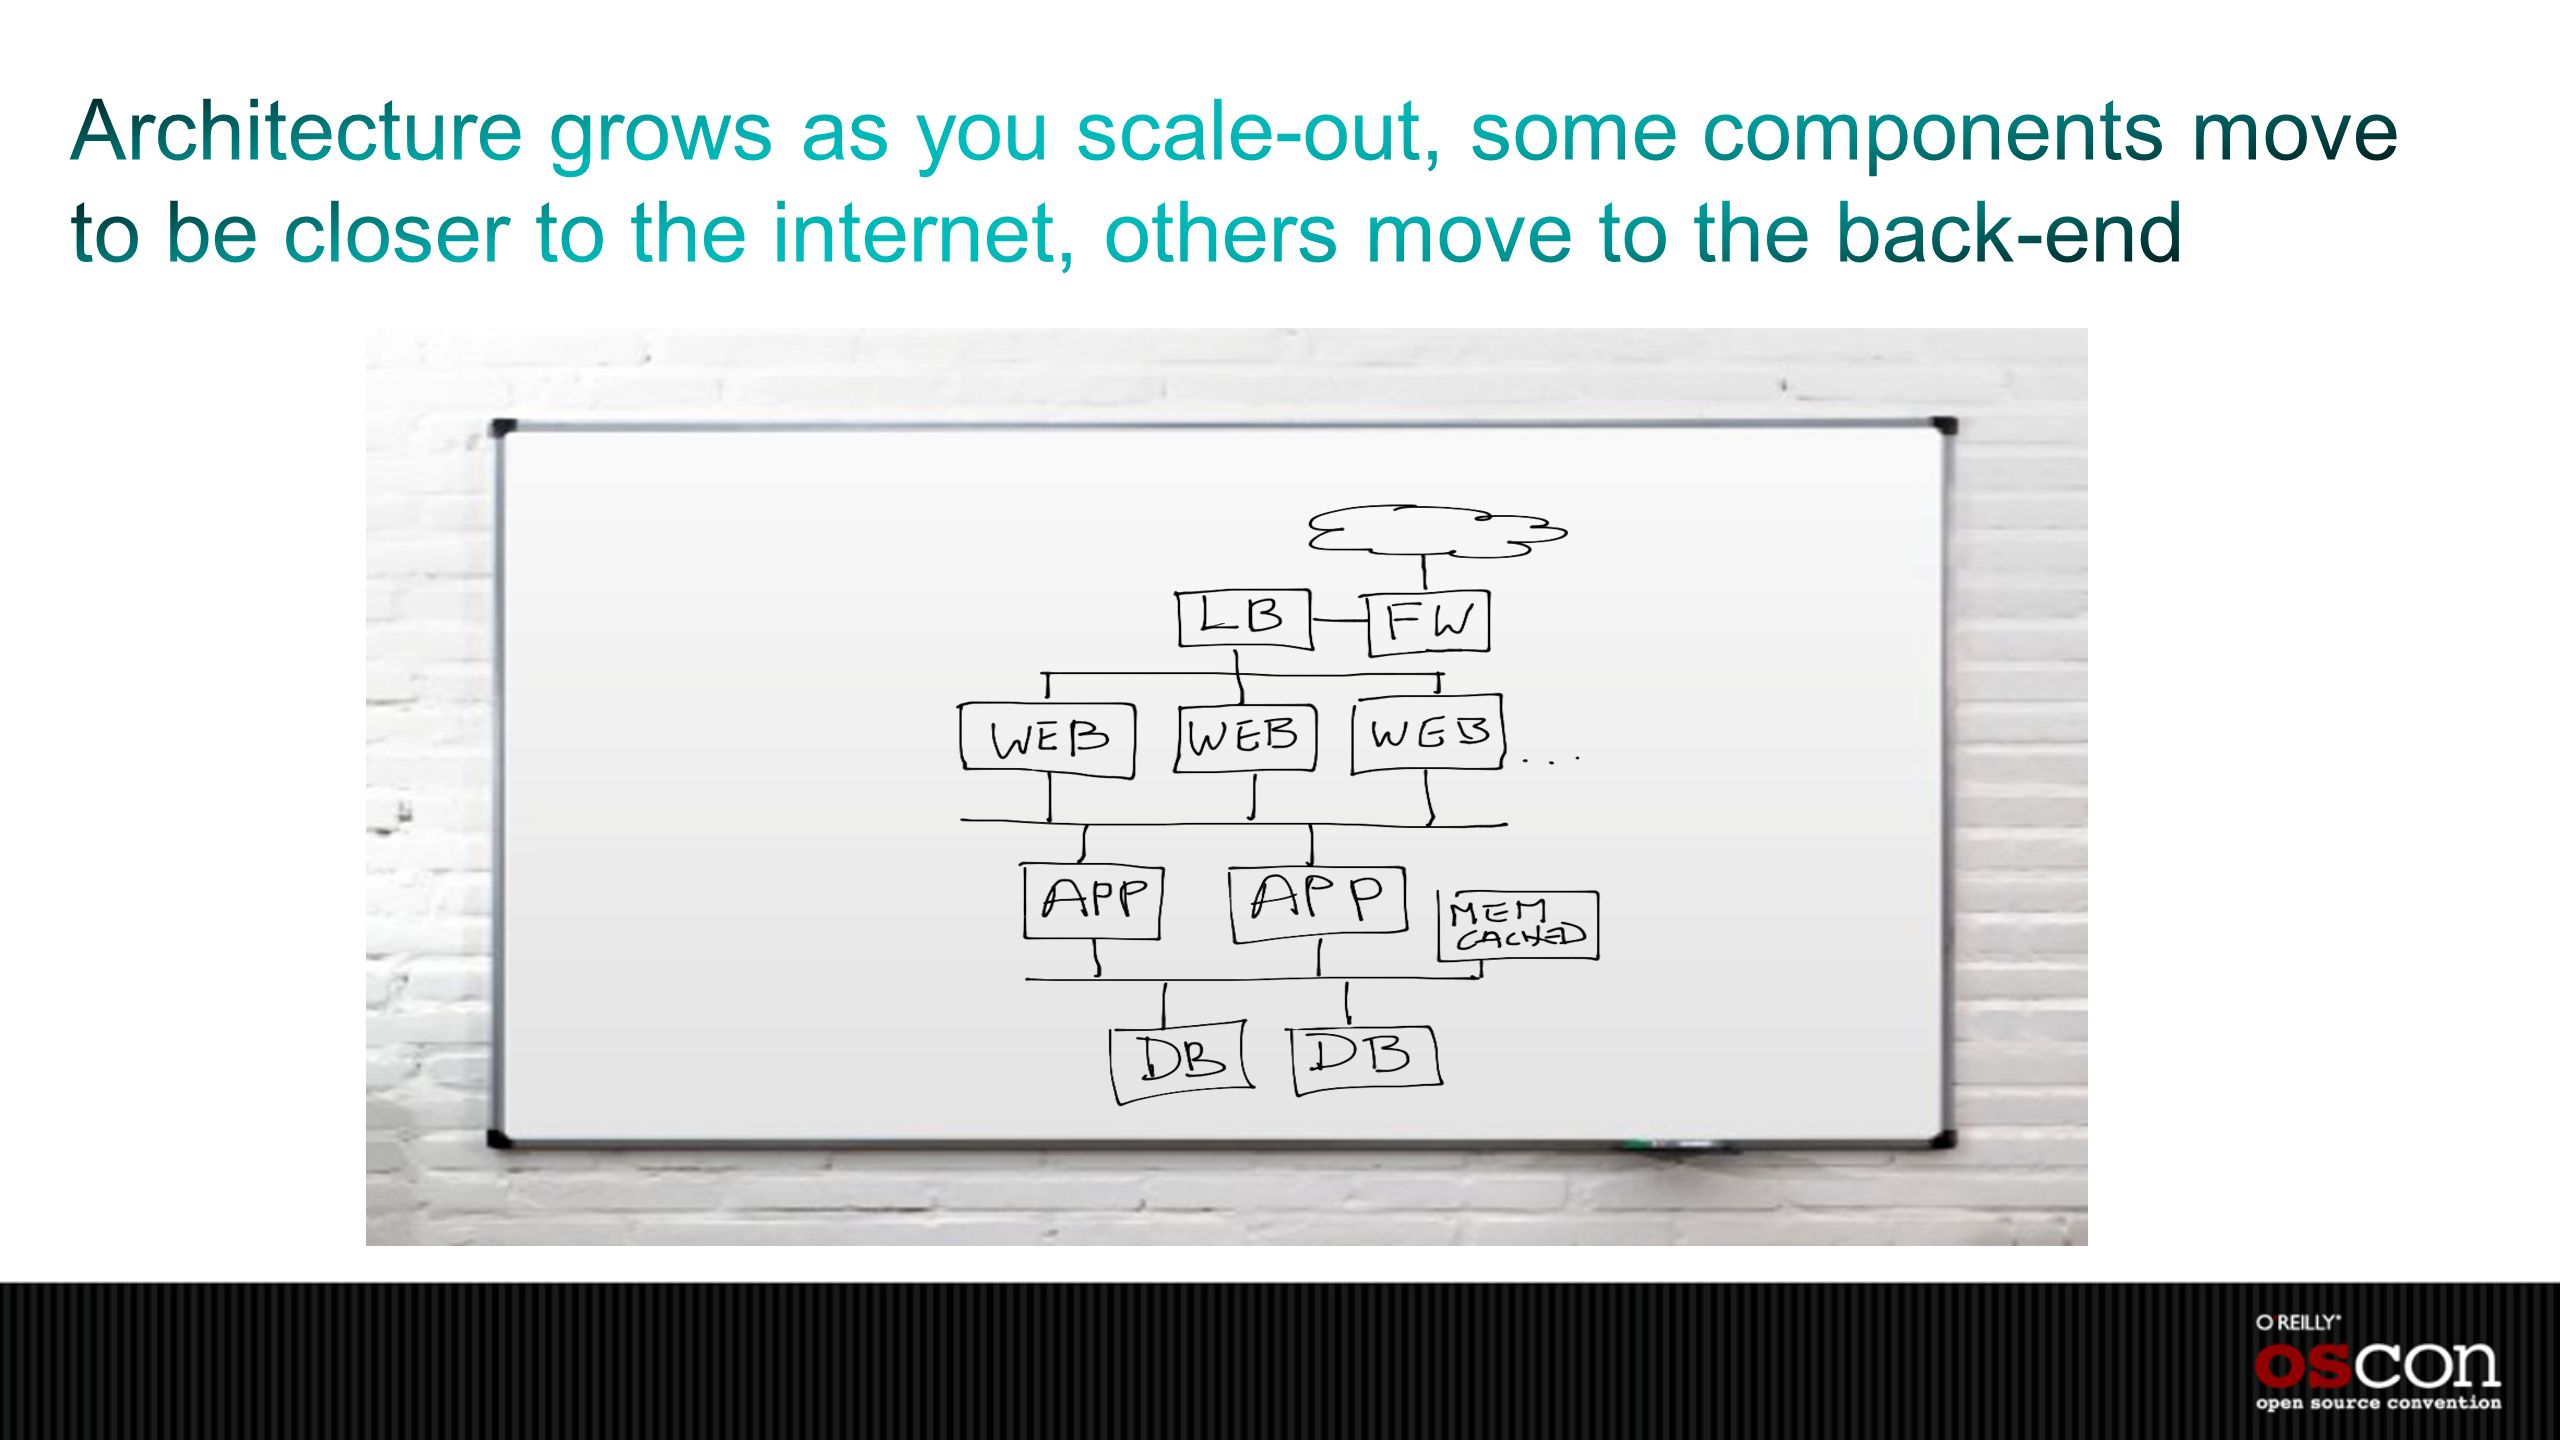 Architecture grows as you scale-out, some components move to be closer to the internet, others move to the back-end